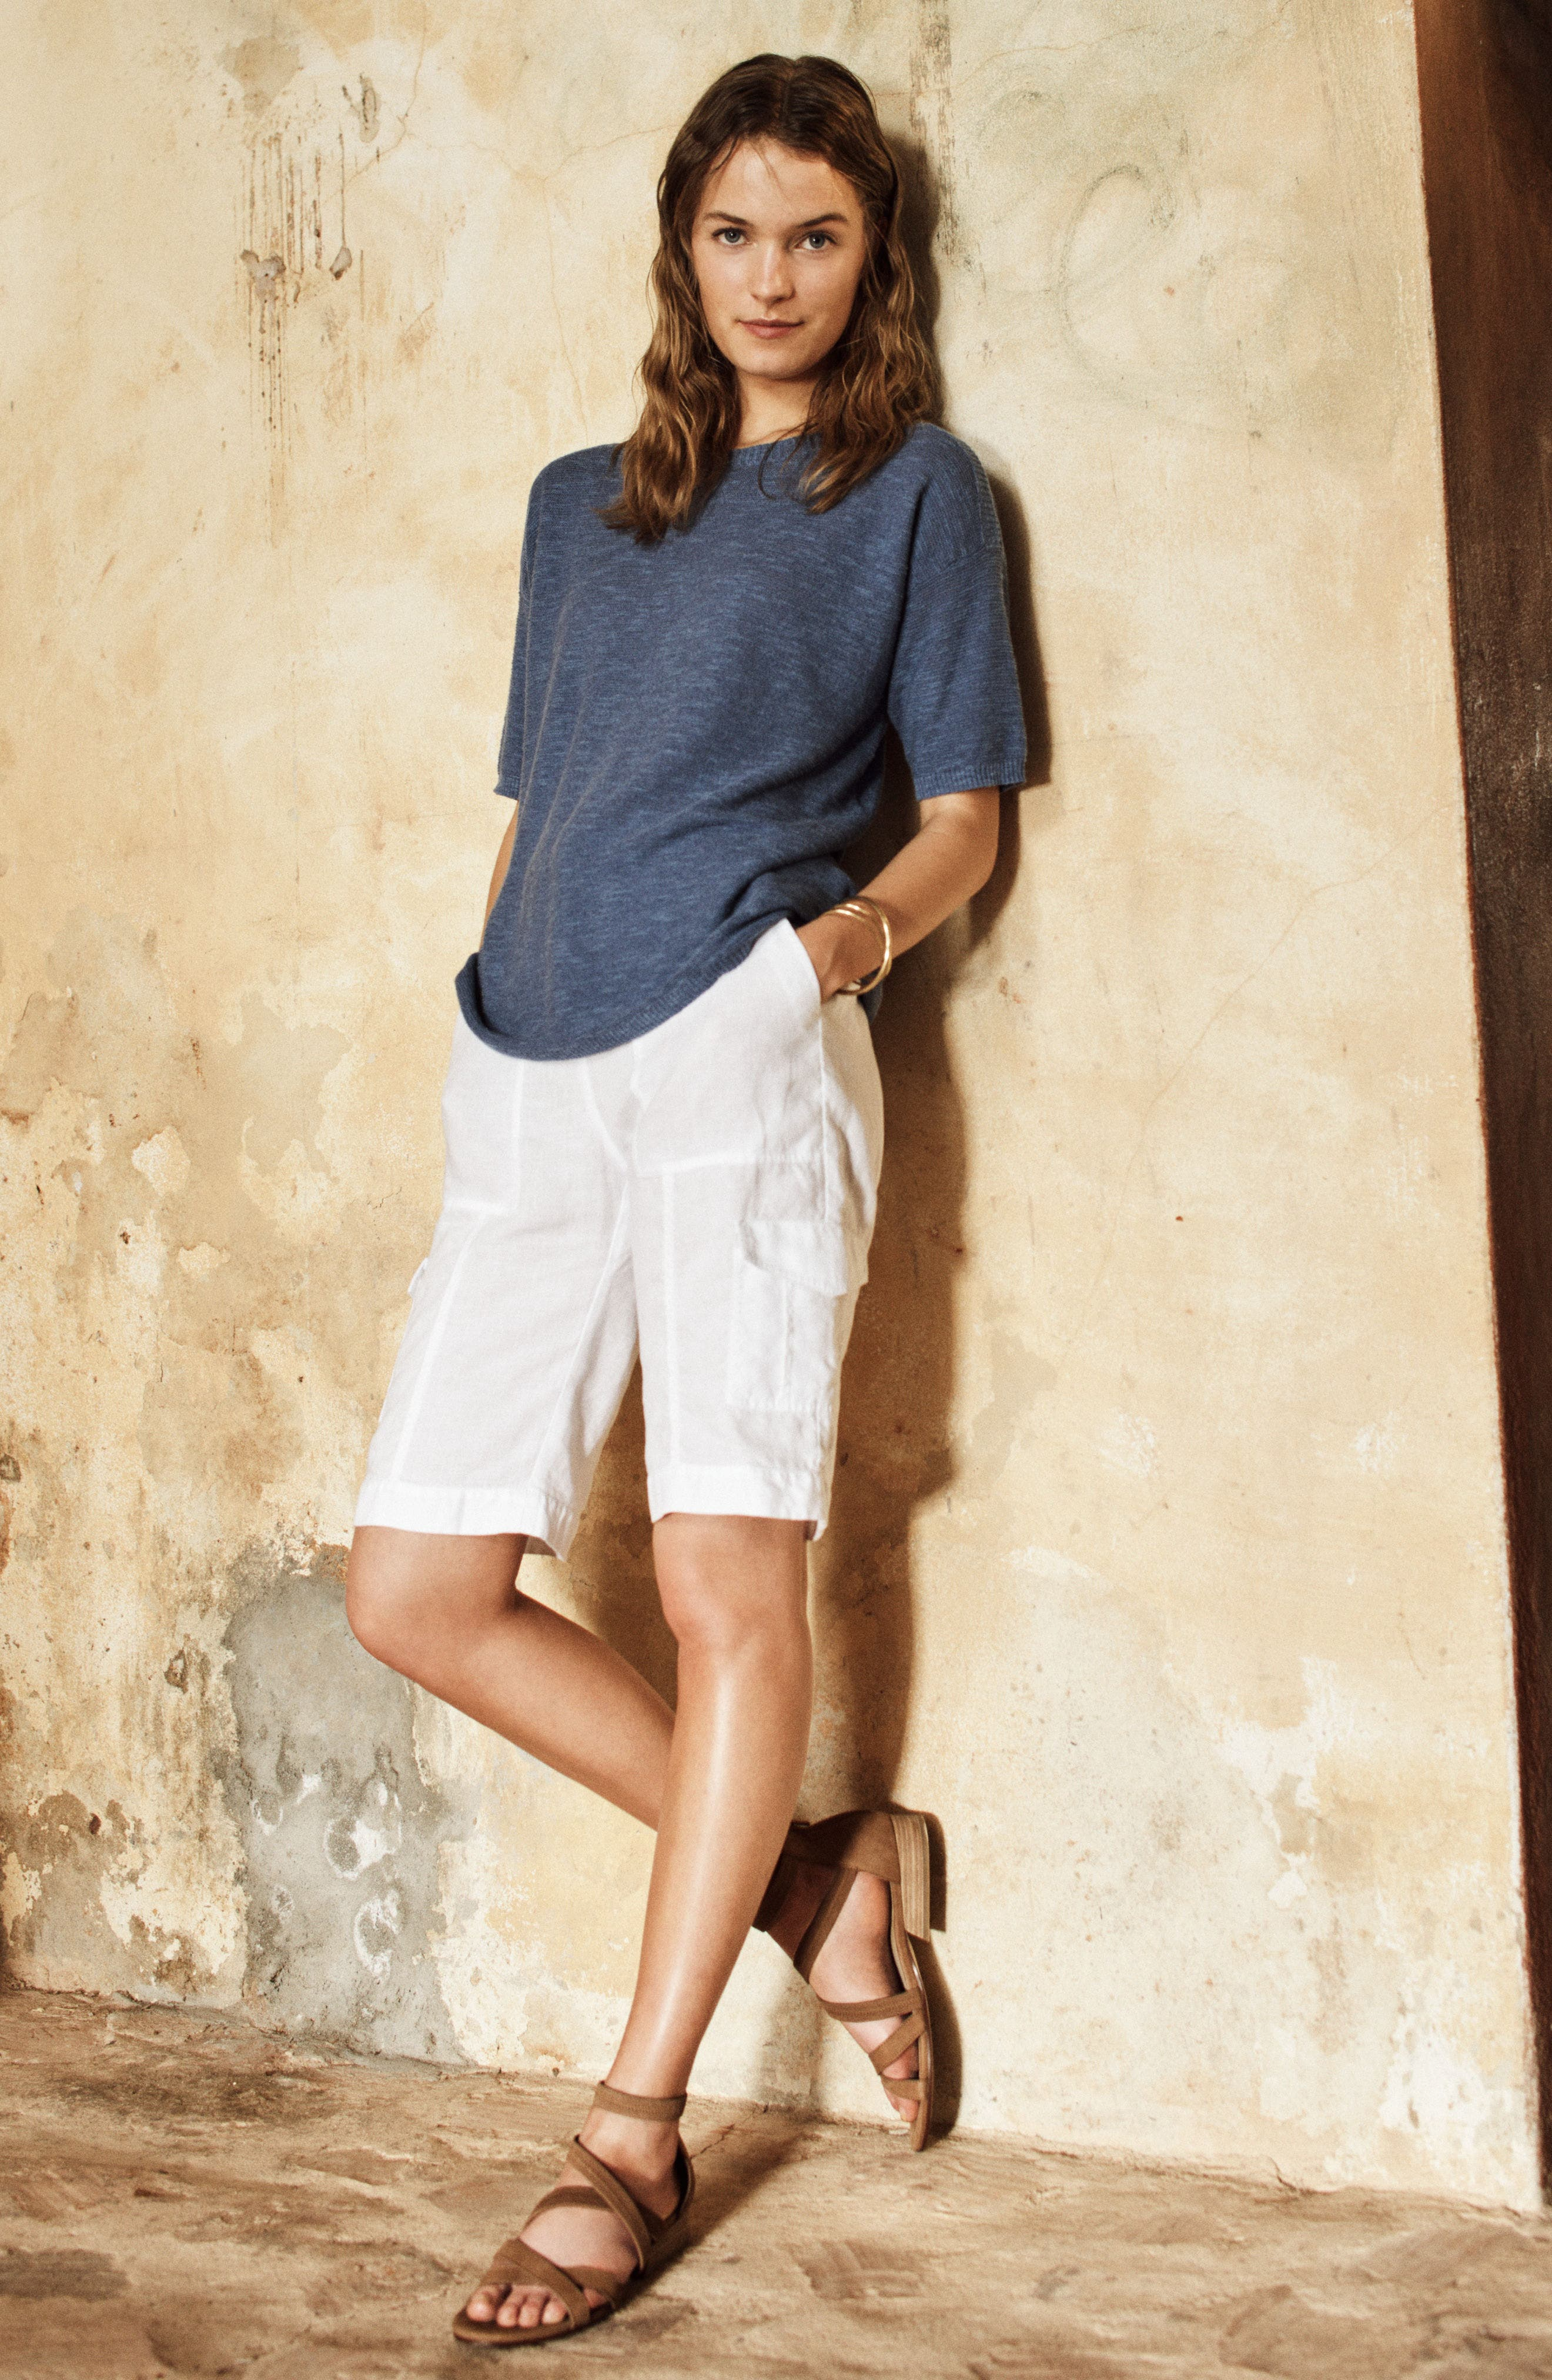 Eileen Fisher Pullover & Shorts Outfit with Accessories